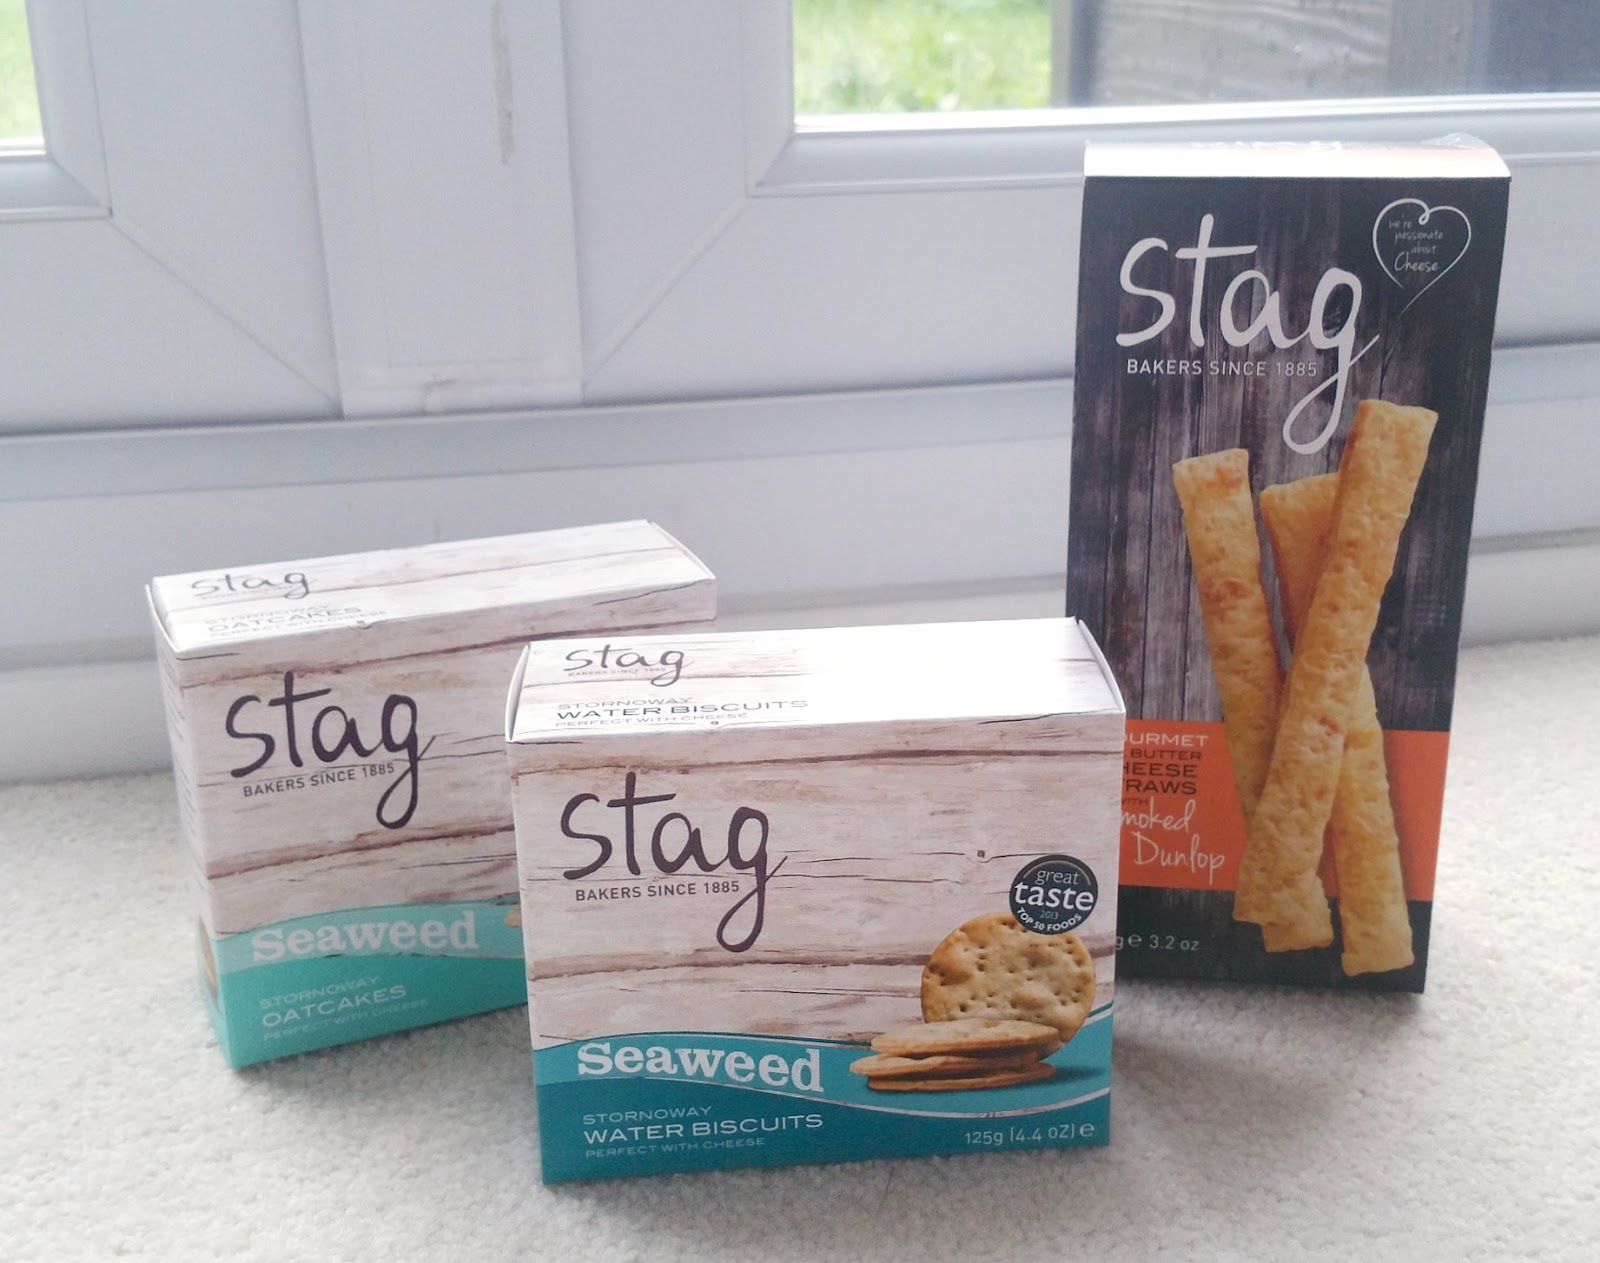 Stag Bakeries, great taste awarded, seaweed biscuits